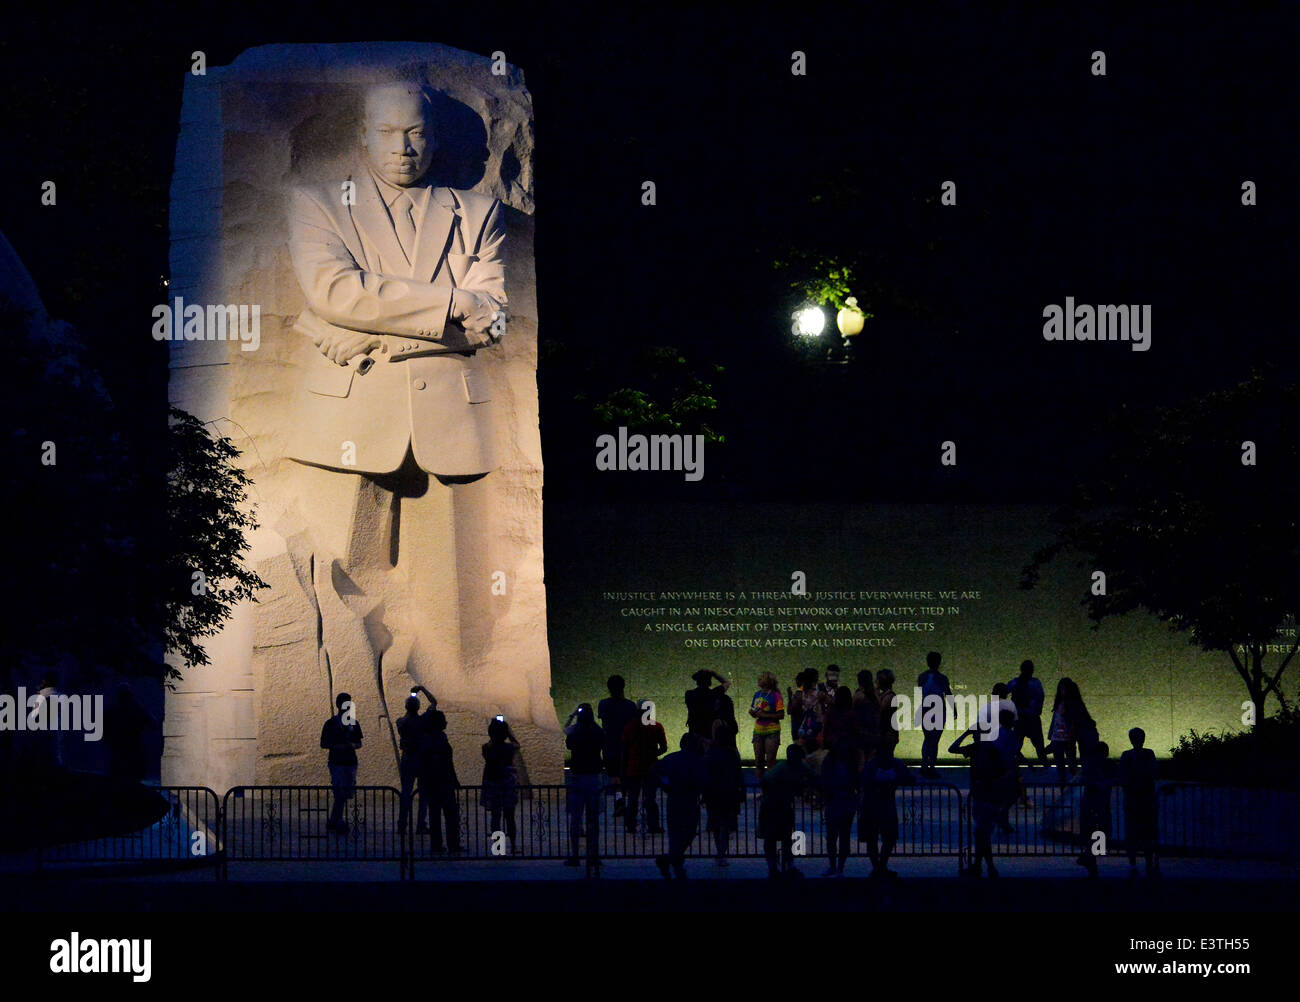 Tourists gather at night to visit the Martin Luther King Jr. Memorial June 18, 2014 in Washington, D.C. - Stock Image